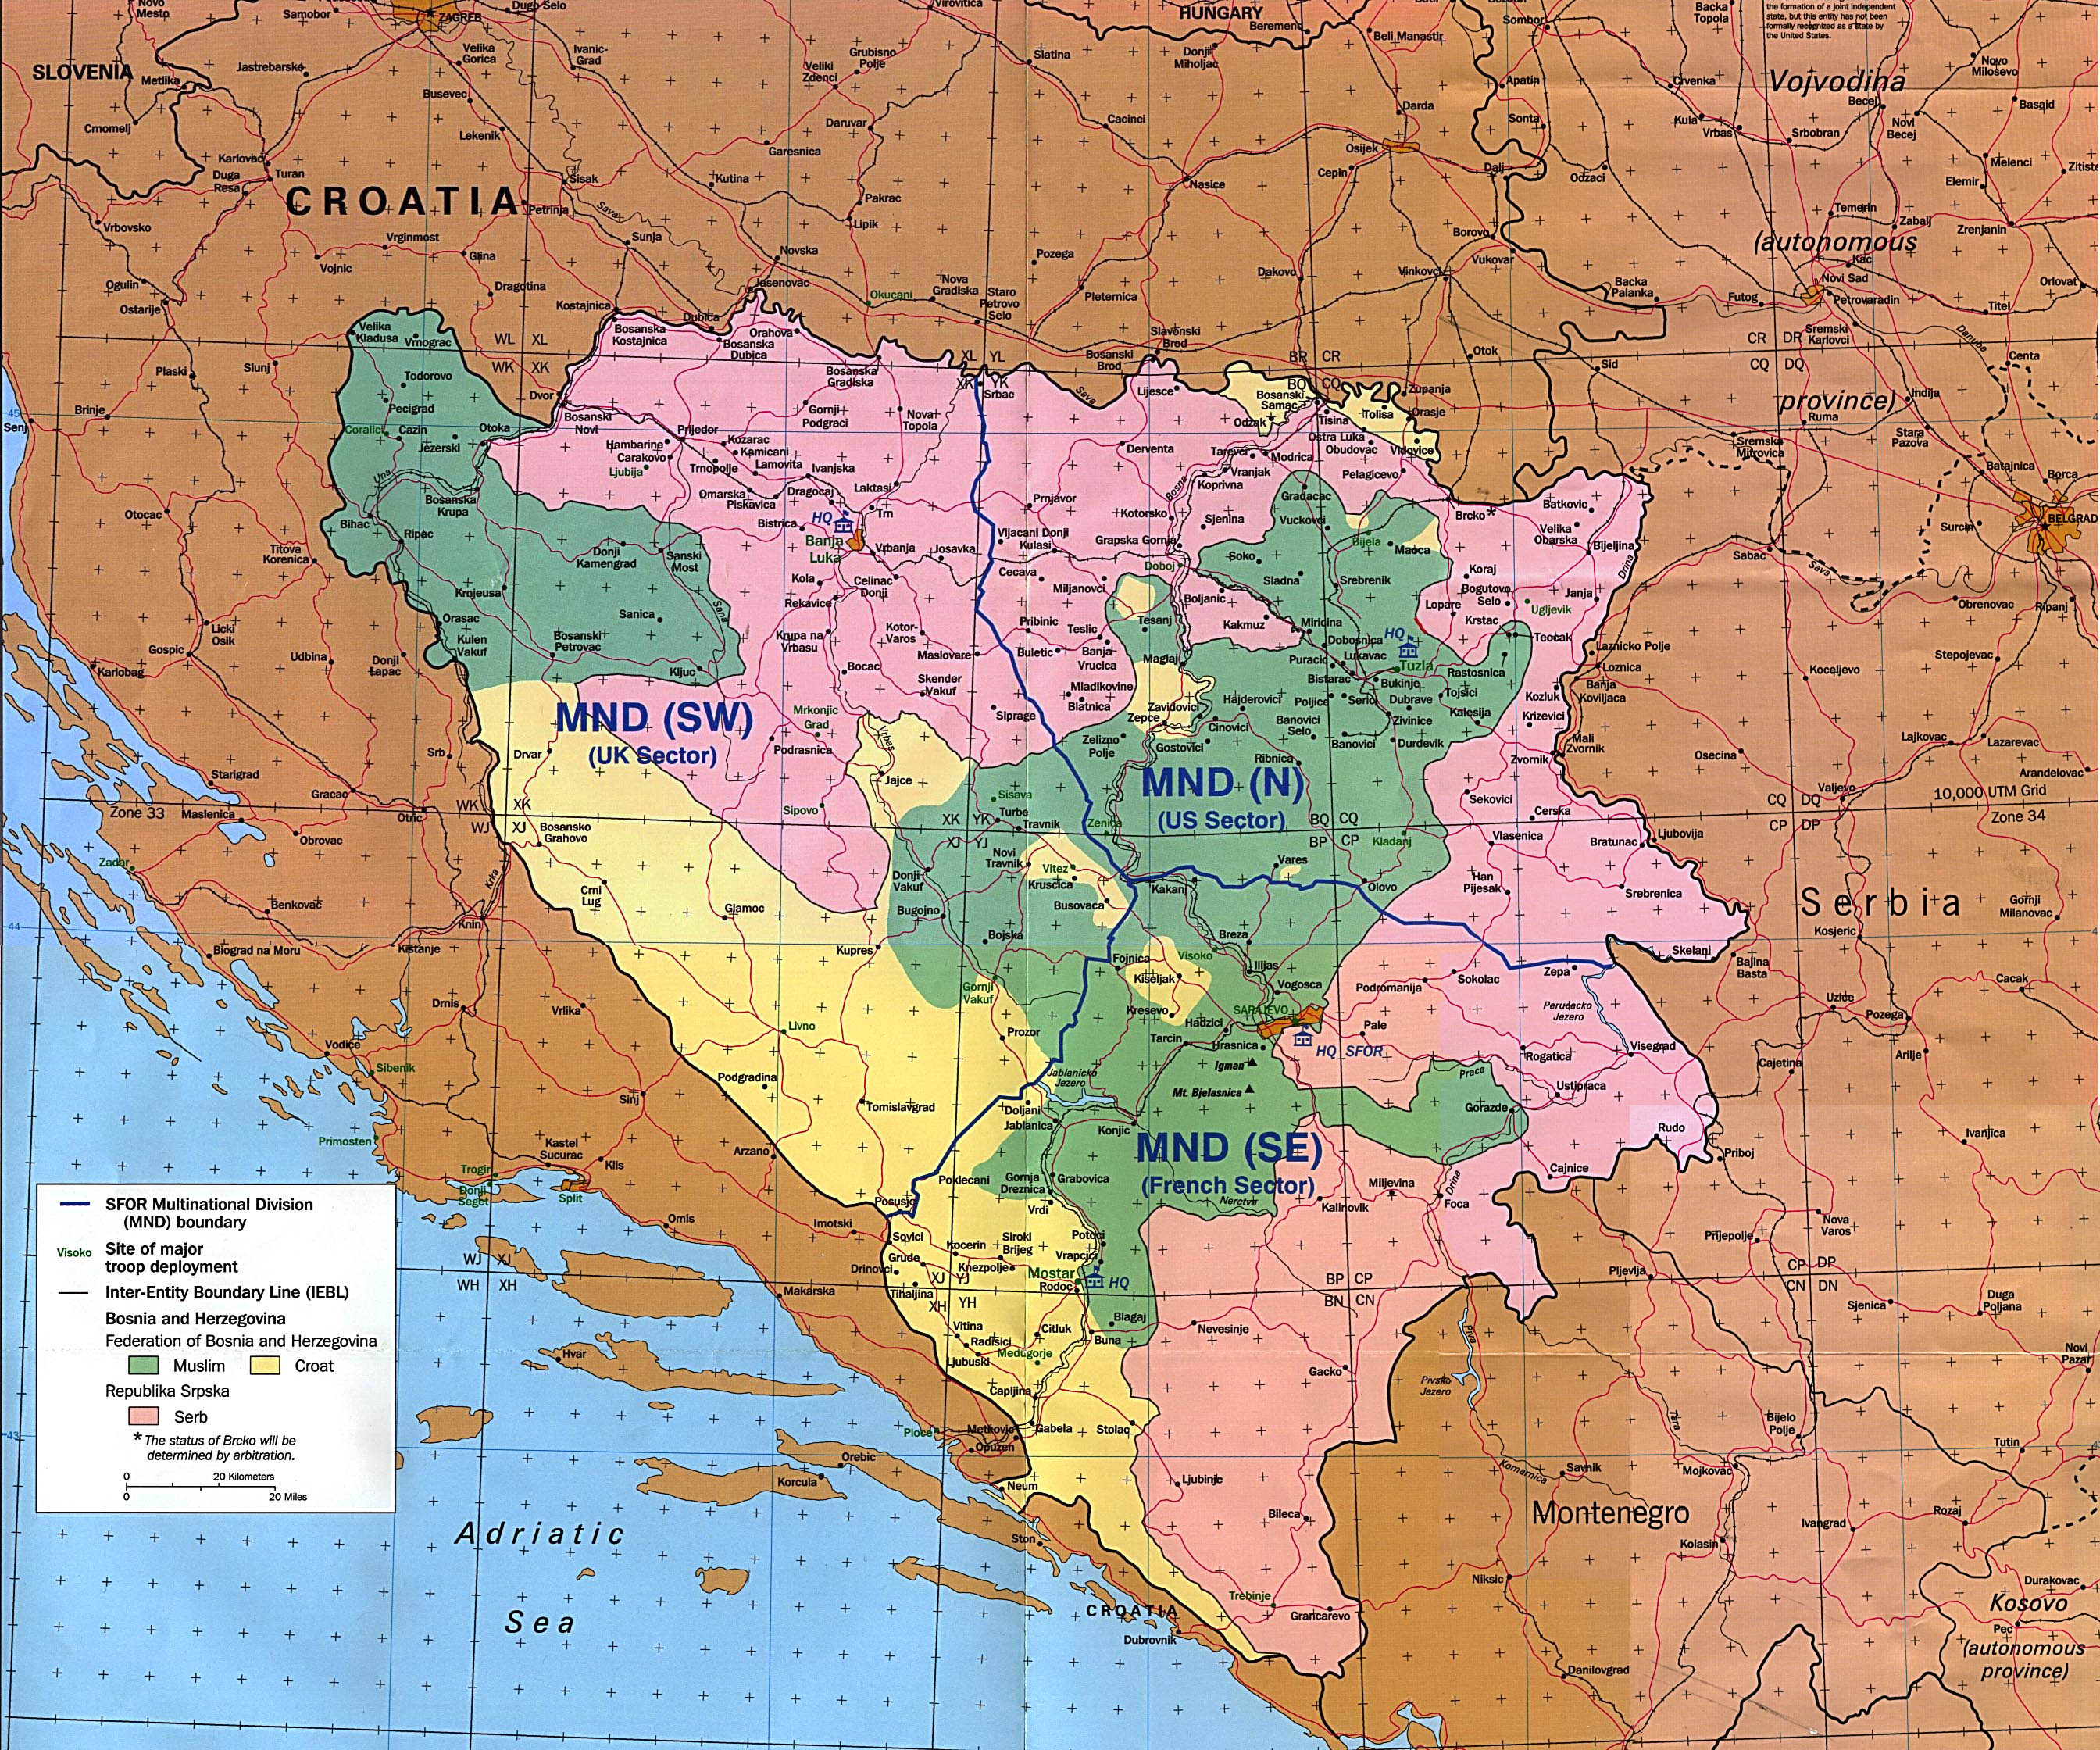 Bosnia Maps - Perry-Castañeda Map Collection - UT Liry Online on map of macedonia, map of san marino, map of albania, map of croatia, map of serbia, map of yugoslavia, map of bosnia and surrounding countries, republic of macedonia, map of sarajevo, map of turkey, map of malta, map of slovenia, bosnian war, republic of ireland, map of europe, map of eritrea, map of india, republika srpska, map of bulgaria, srebrenica massacre, map of kosovo, map of hungary, map of montenegro, map of czech republic,